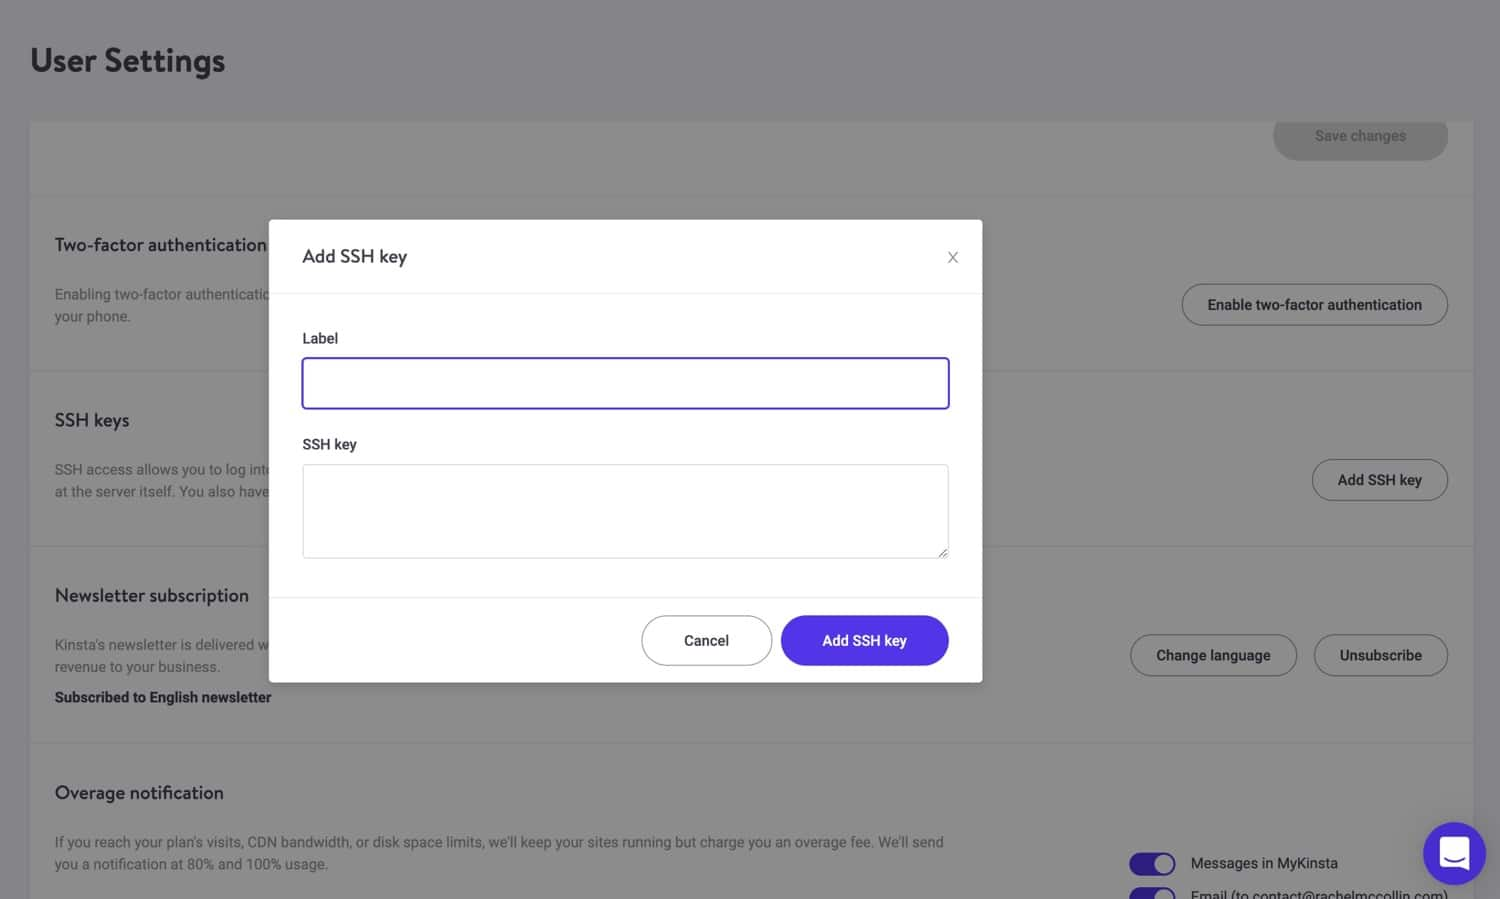 Adding SSH key in MyKinsta